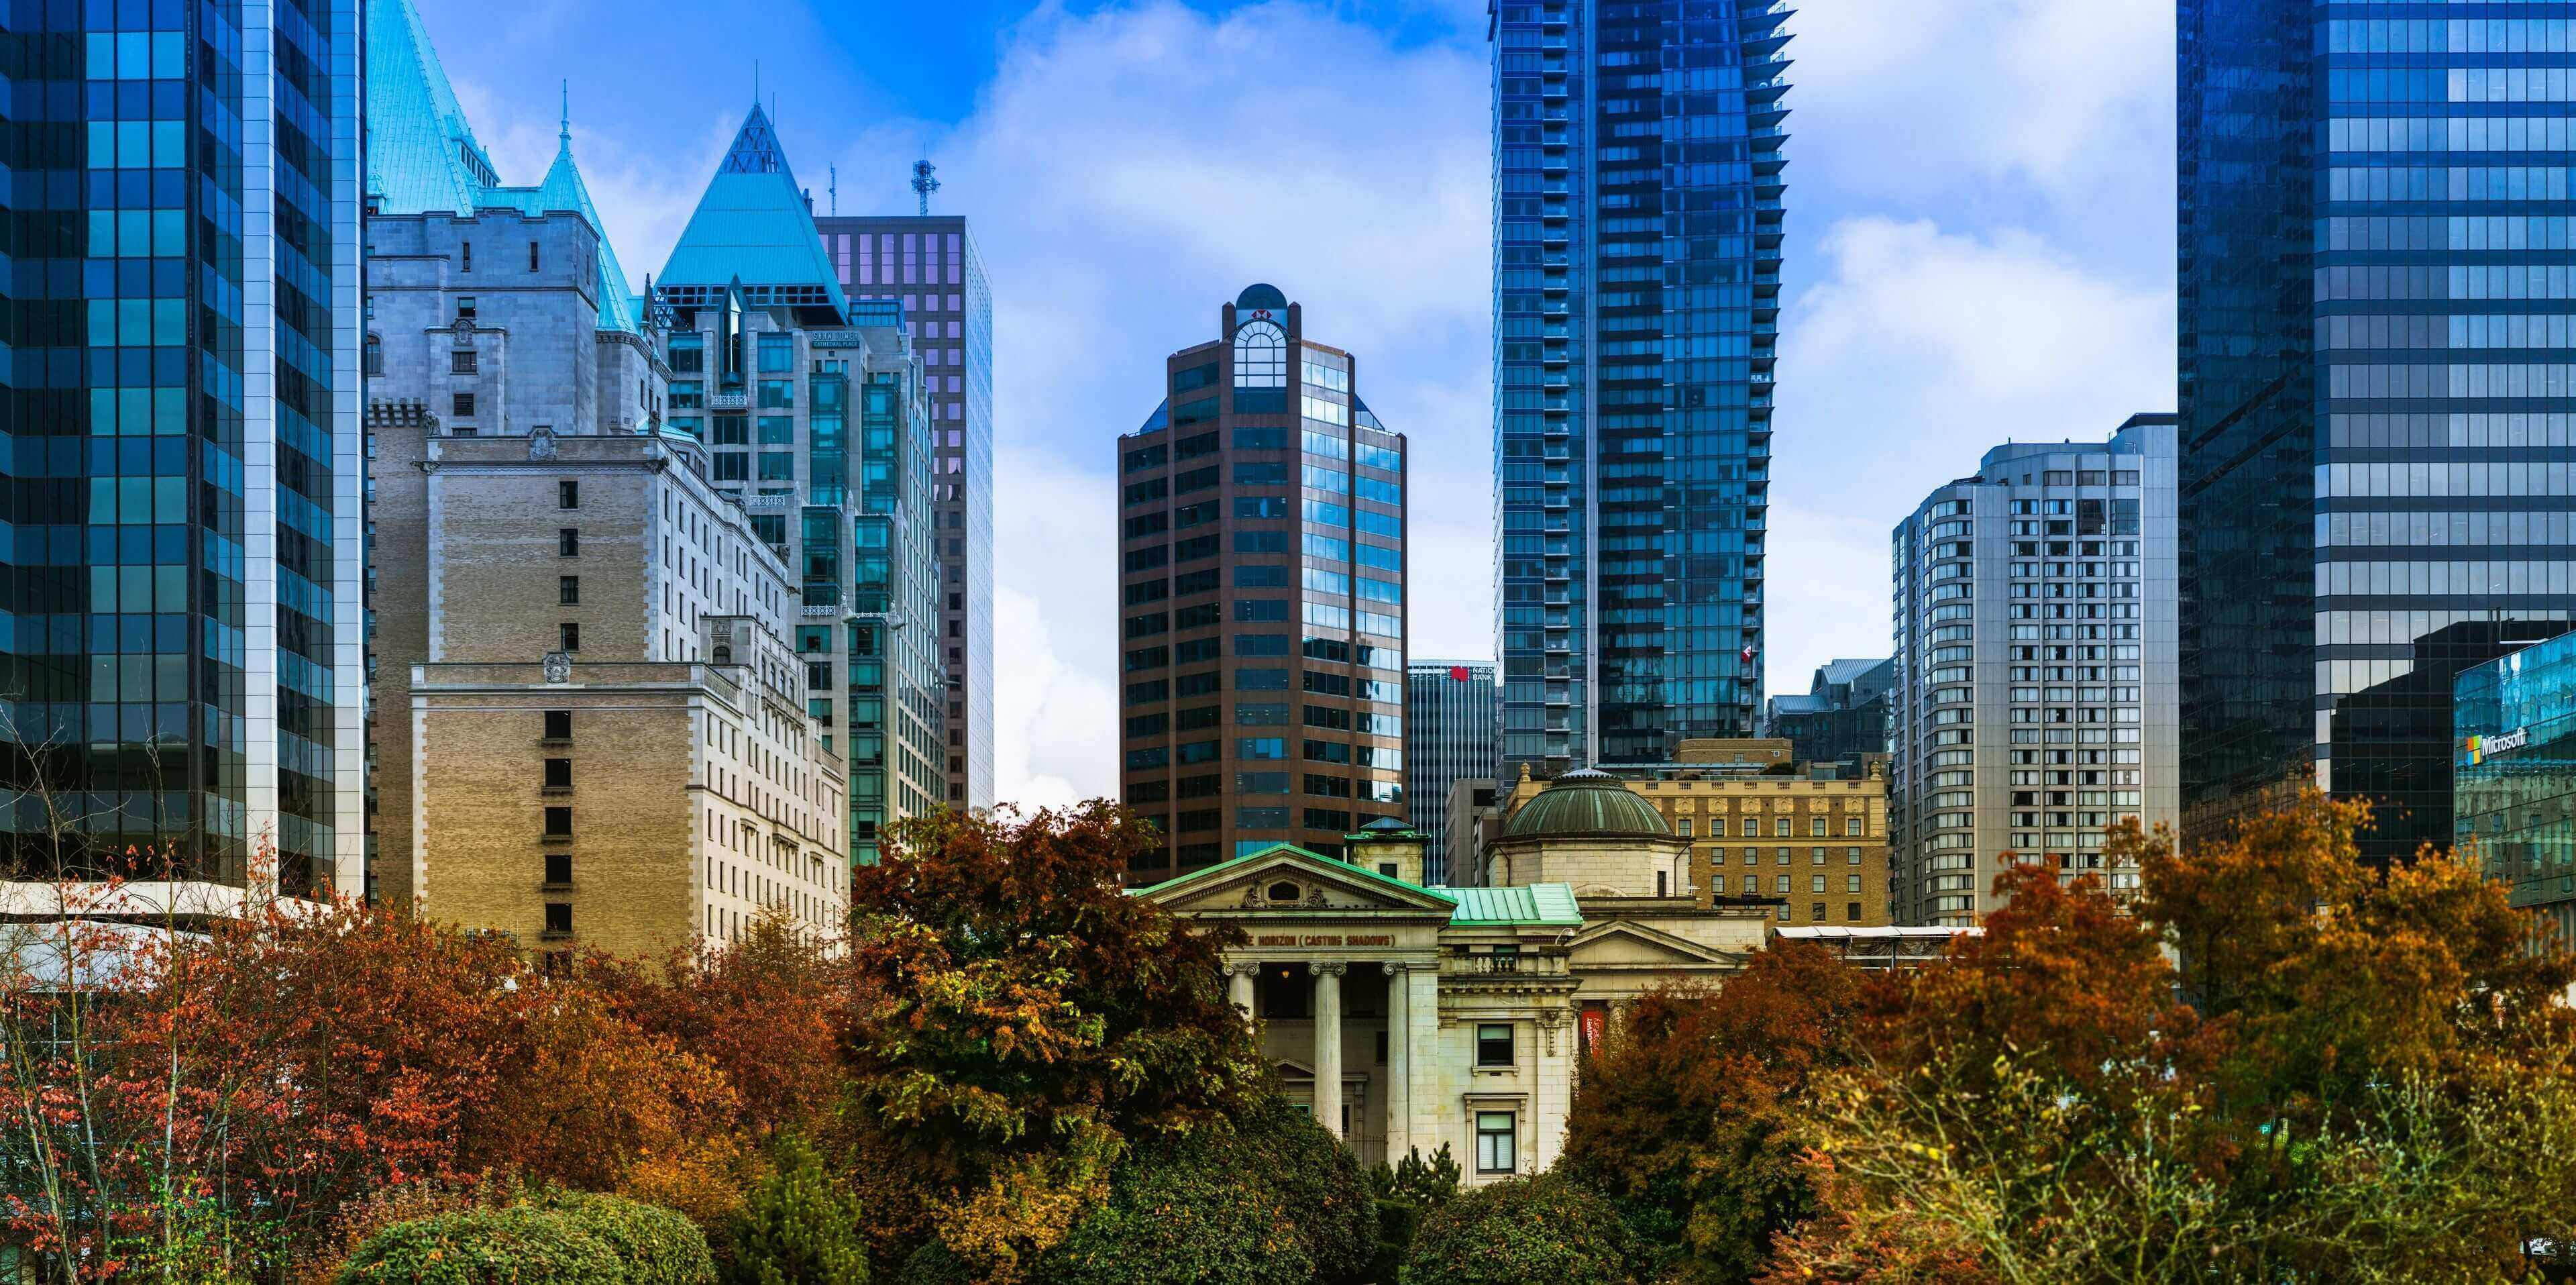 The beautiful scenery of downtown Vancouver